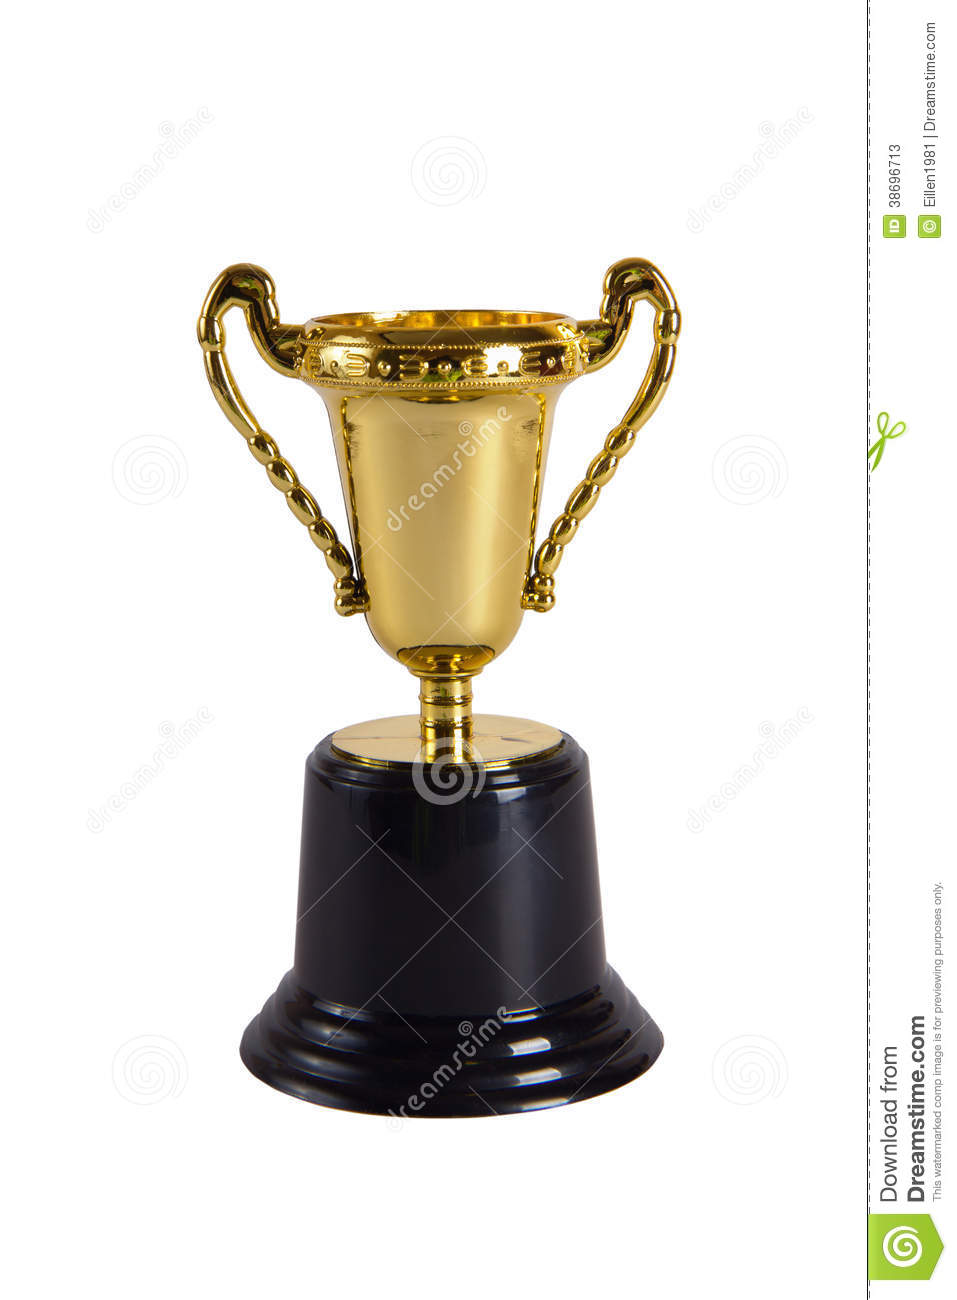 Toy Golden Trophy Cup